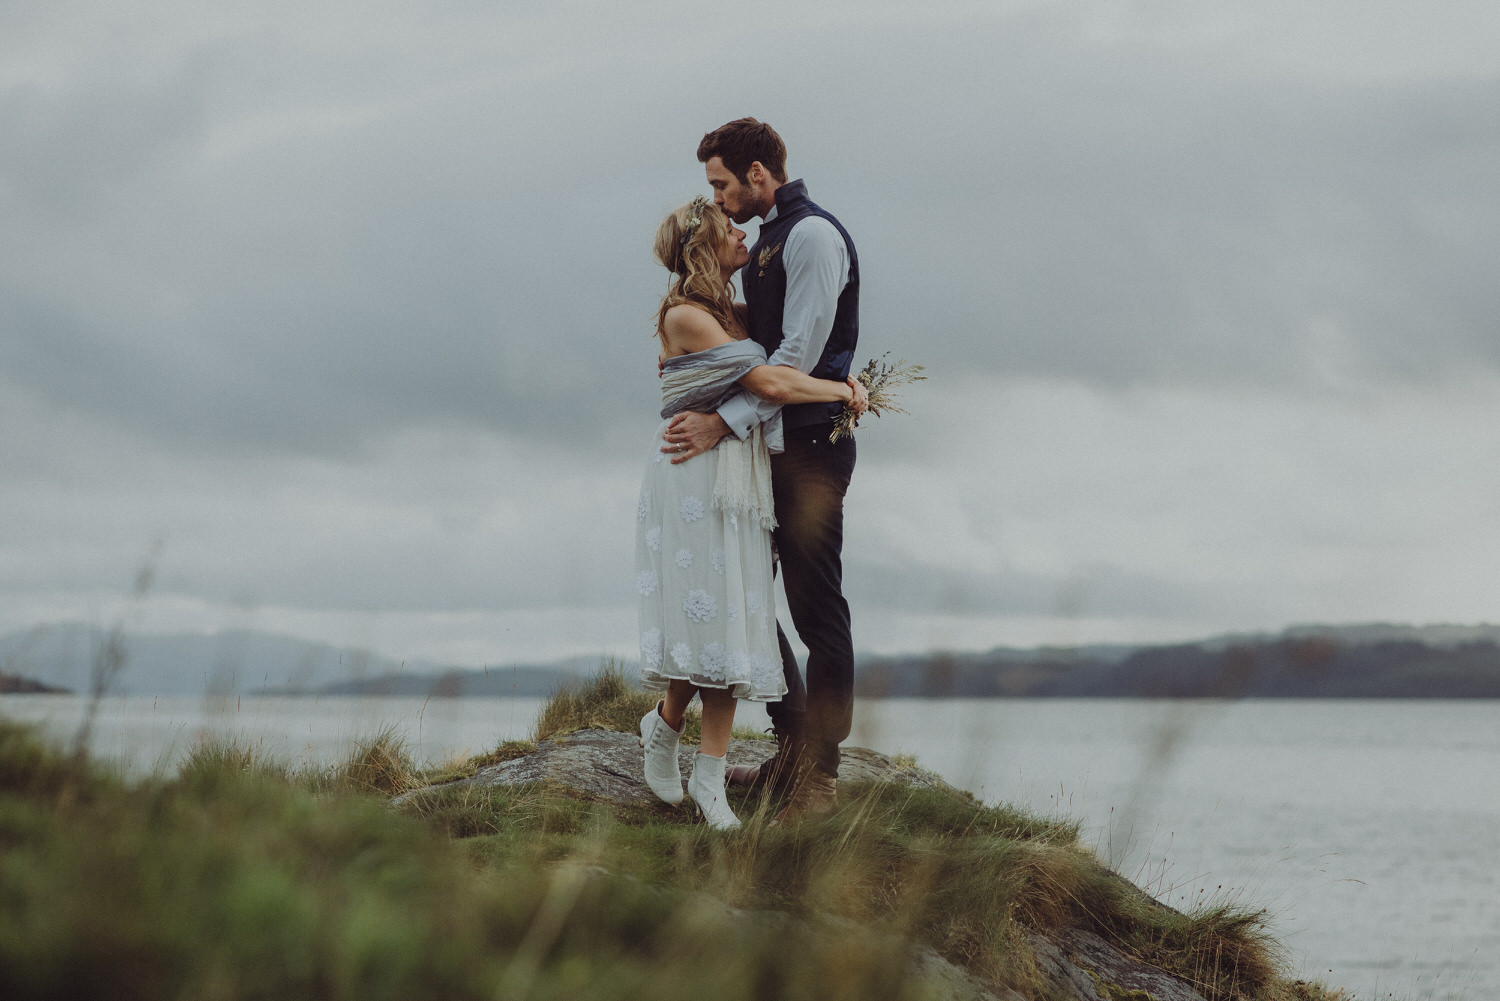 Dom & Leanne's intimate Scottish elopement on the banks of Loch Fyne in Argyll, Scotland